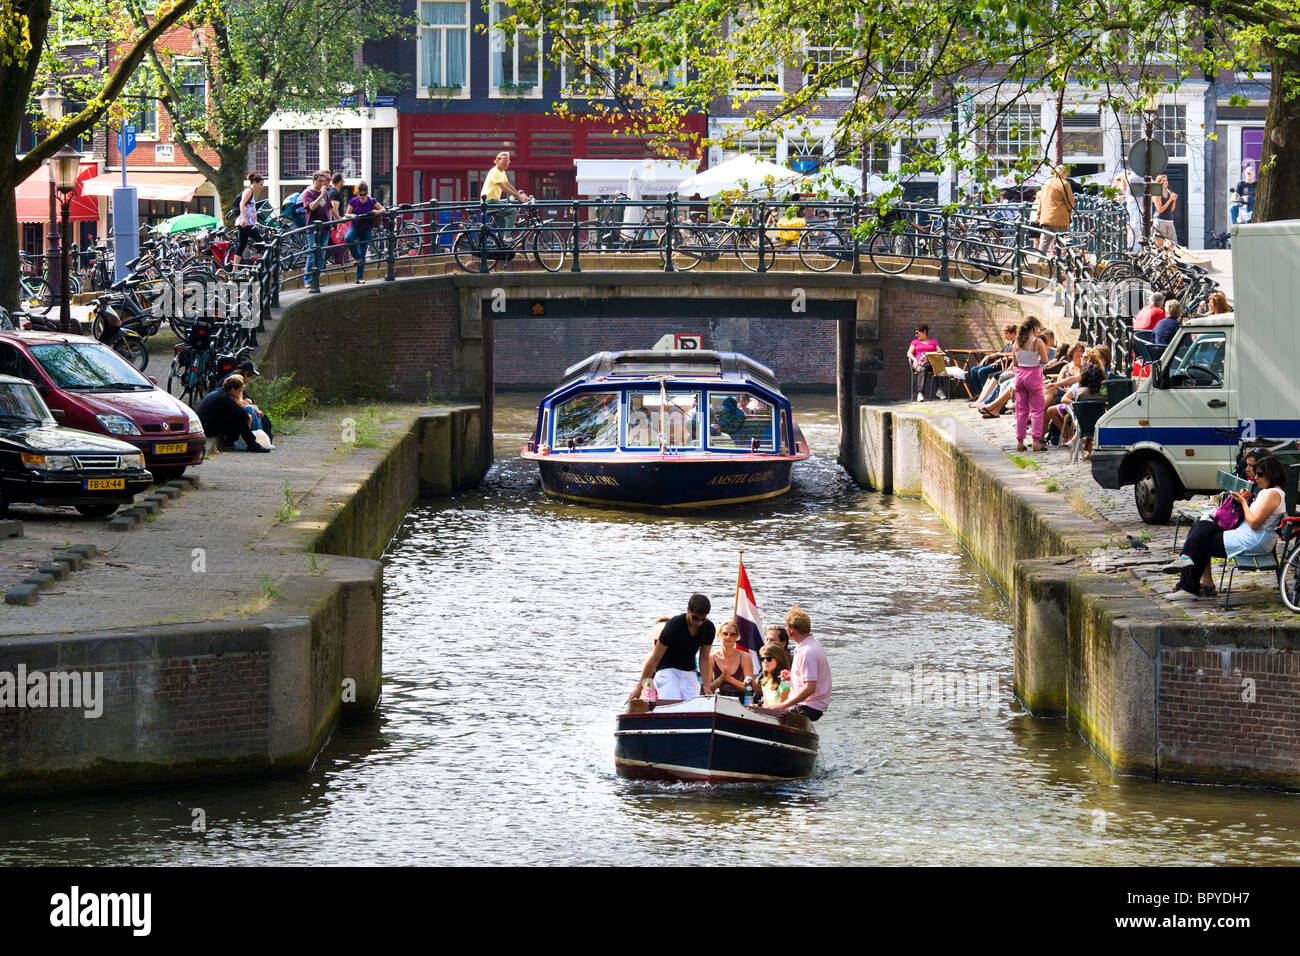 Amsterdam. Canal cruise tour boat and small sloop in the Leliegracht Canal with sidewalk cafes. Tourists sitting - Stock Image